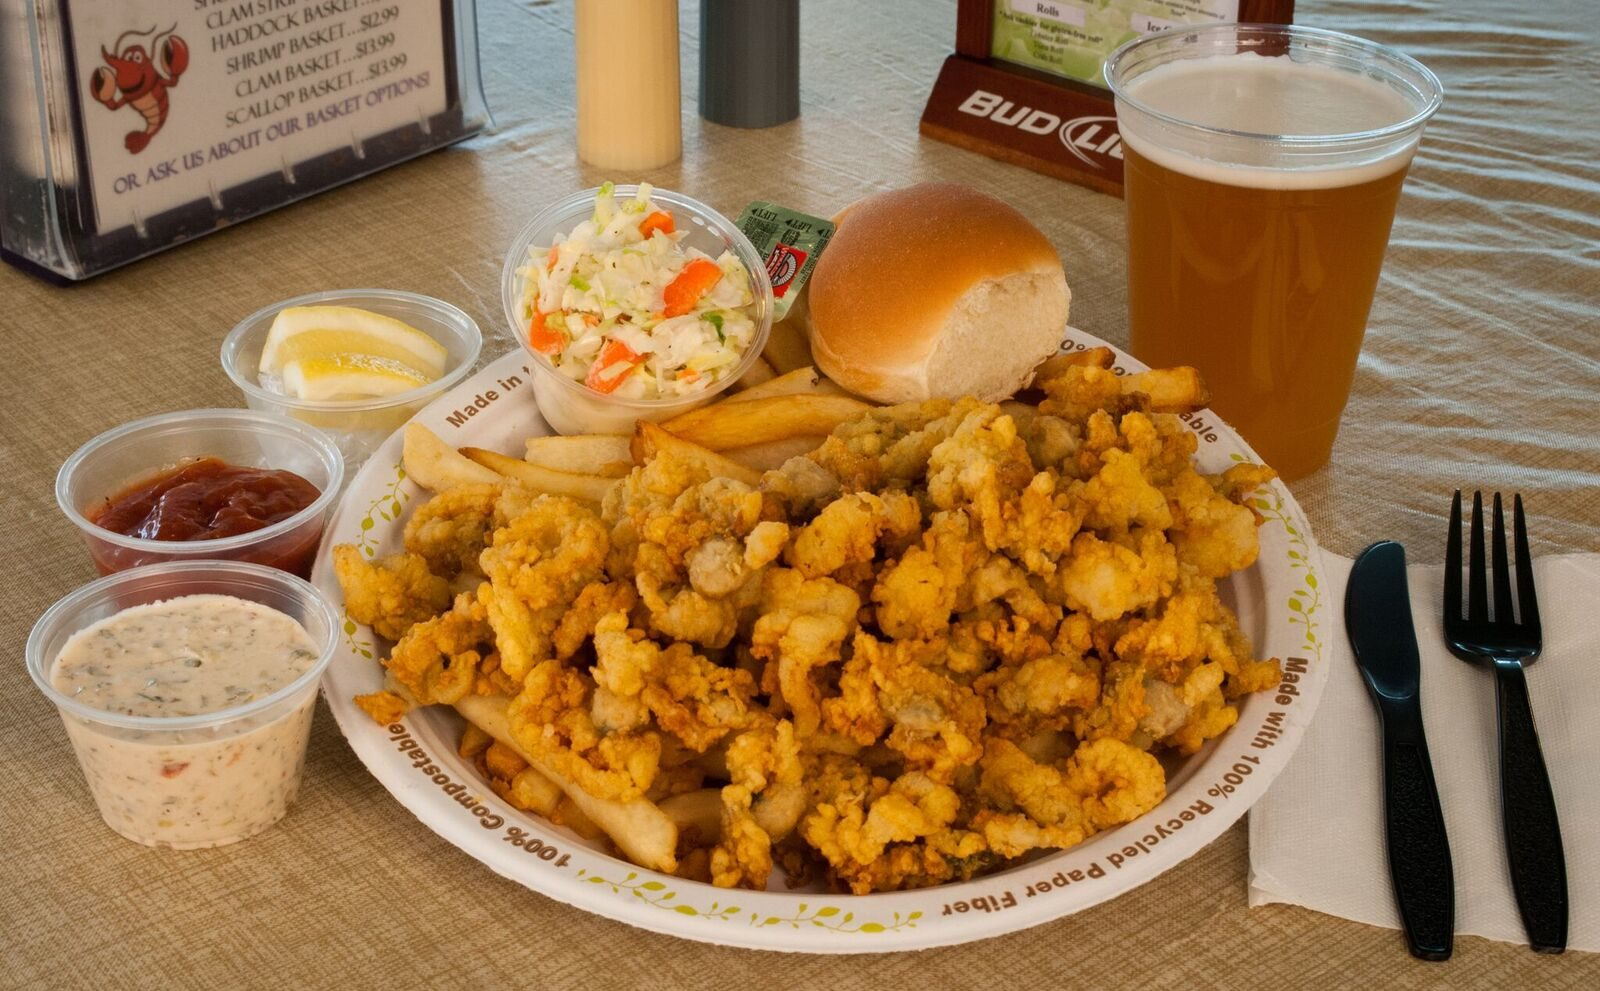 Fried clam plate with beer from the Beach Plum in Portsmouth, N.H.